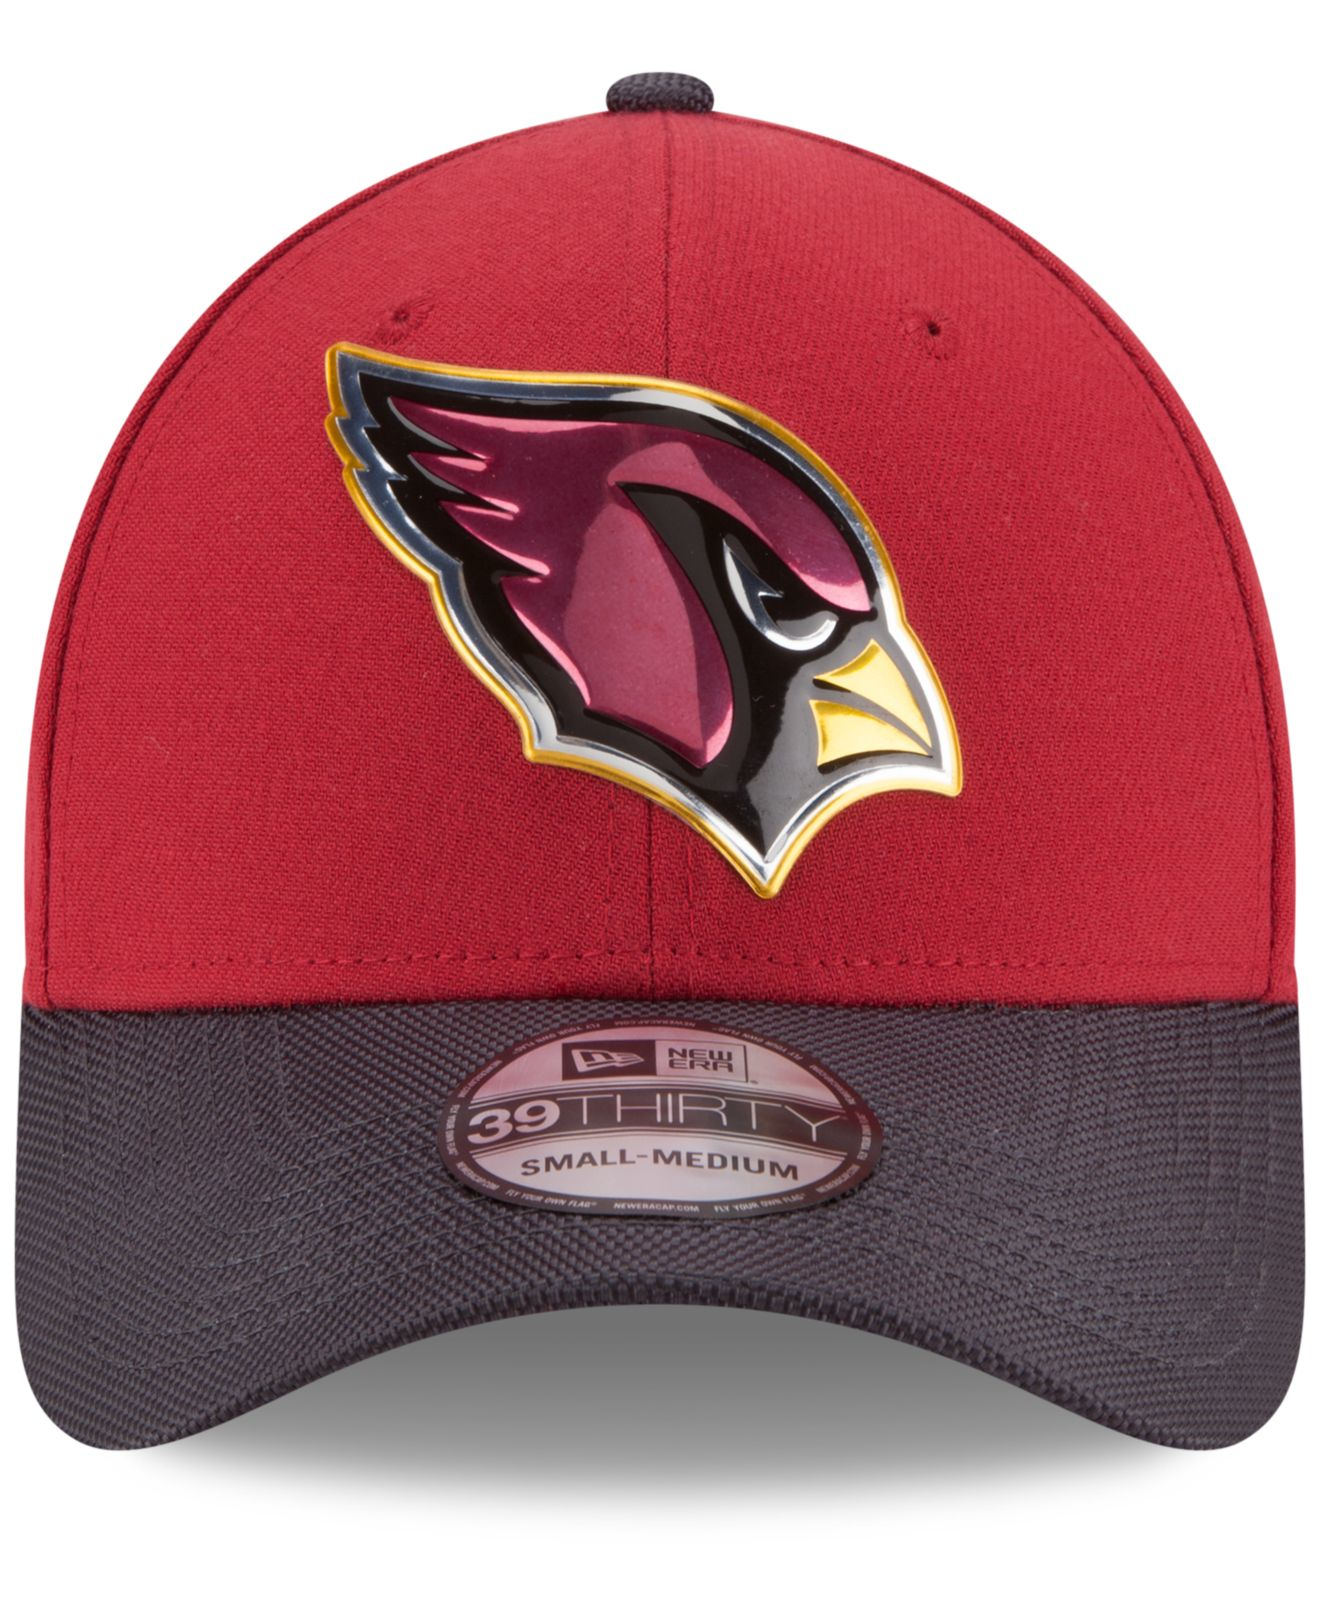 c05f8e28f07 ... buy new era atlanta braves 2013 diamond era recalled bp hat arizona  cardinals hat red arizona